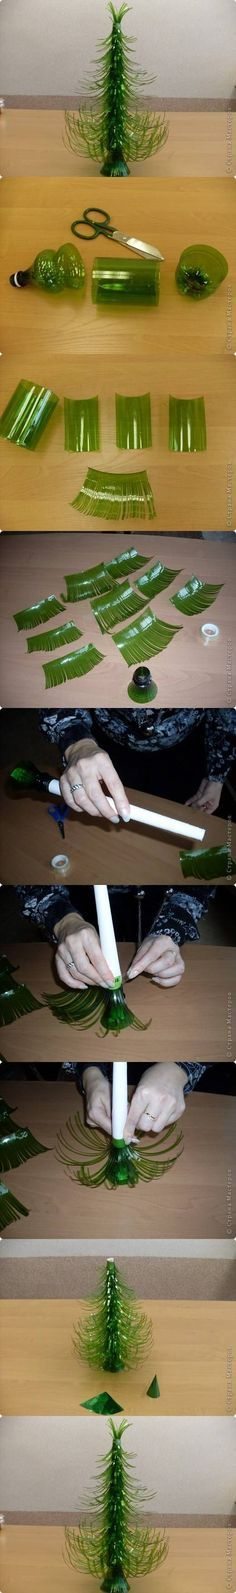 DIY Plastic Bottle Christmas Trees -- Cheap & Creative idea for dorm room tree.